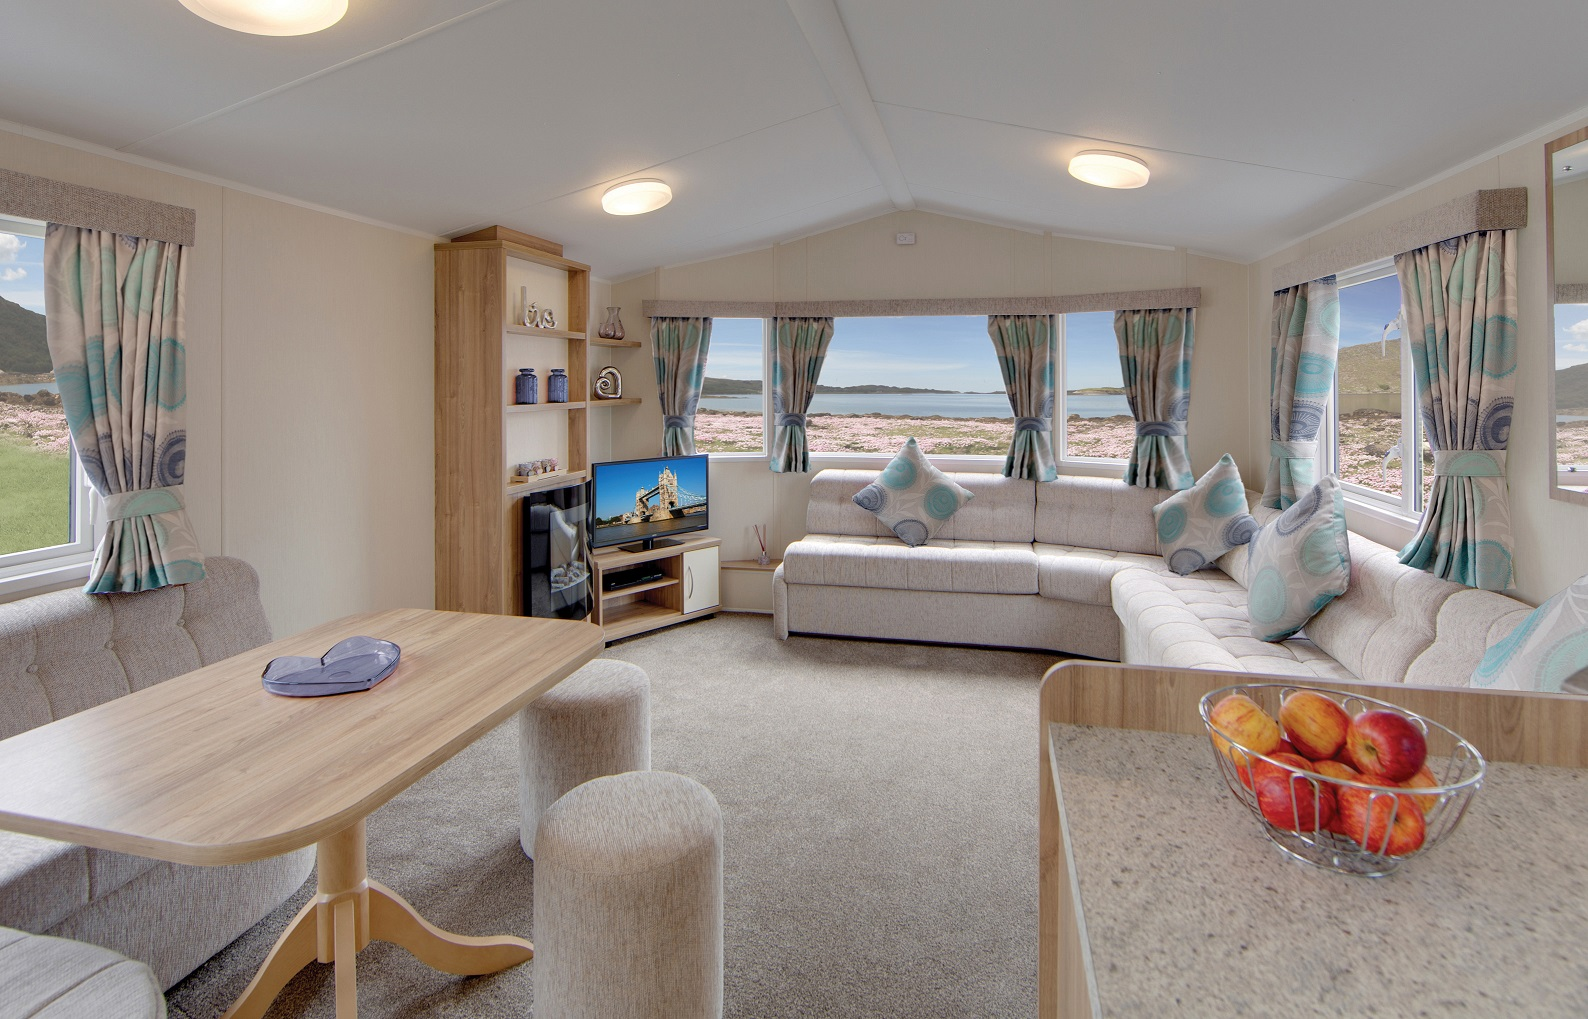 Willerby Rio Gold: Static Caravans and Holiday Homes for Sale on Caravan Parks, Stanhope, Durham and Weardale Large Image 1